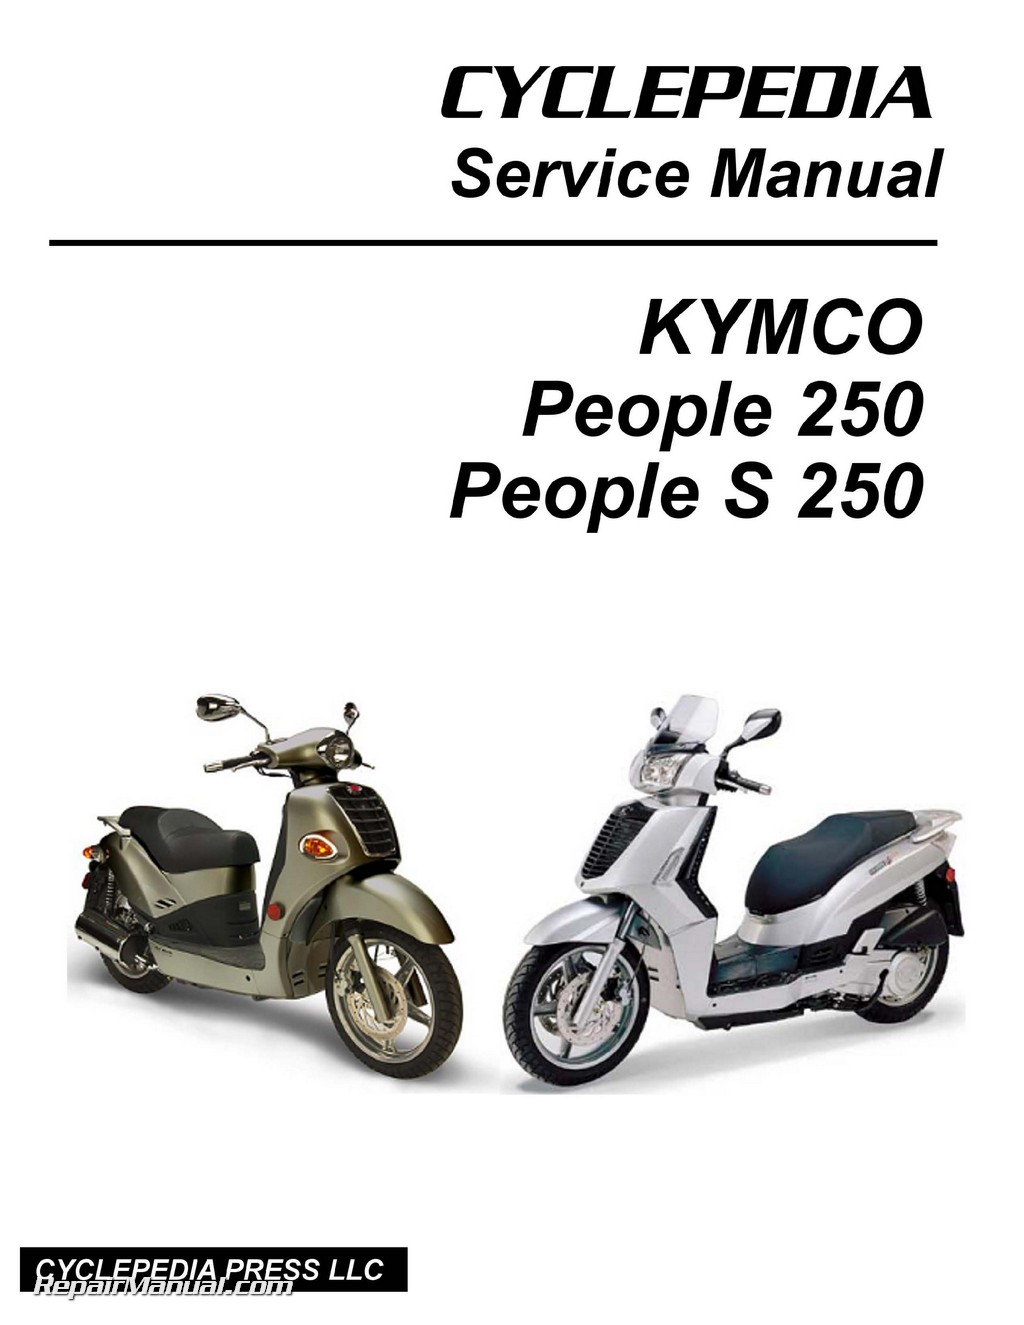 kymco people 250 and s 250 scooter service manual printed by cyclepedia